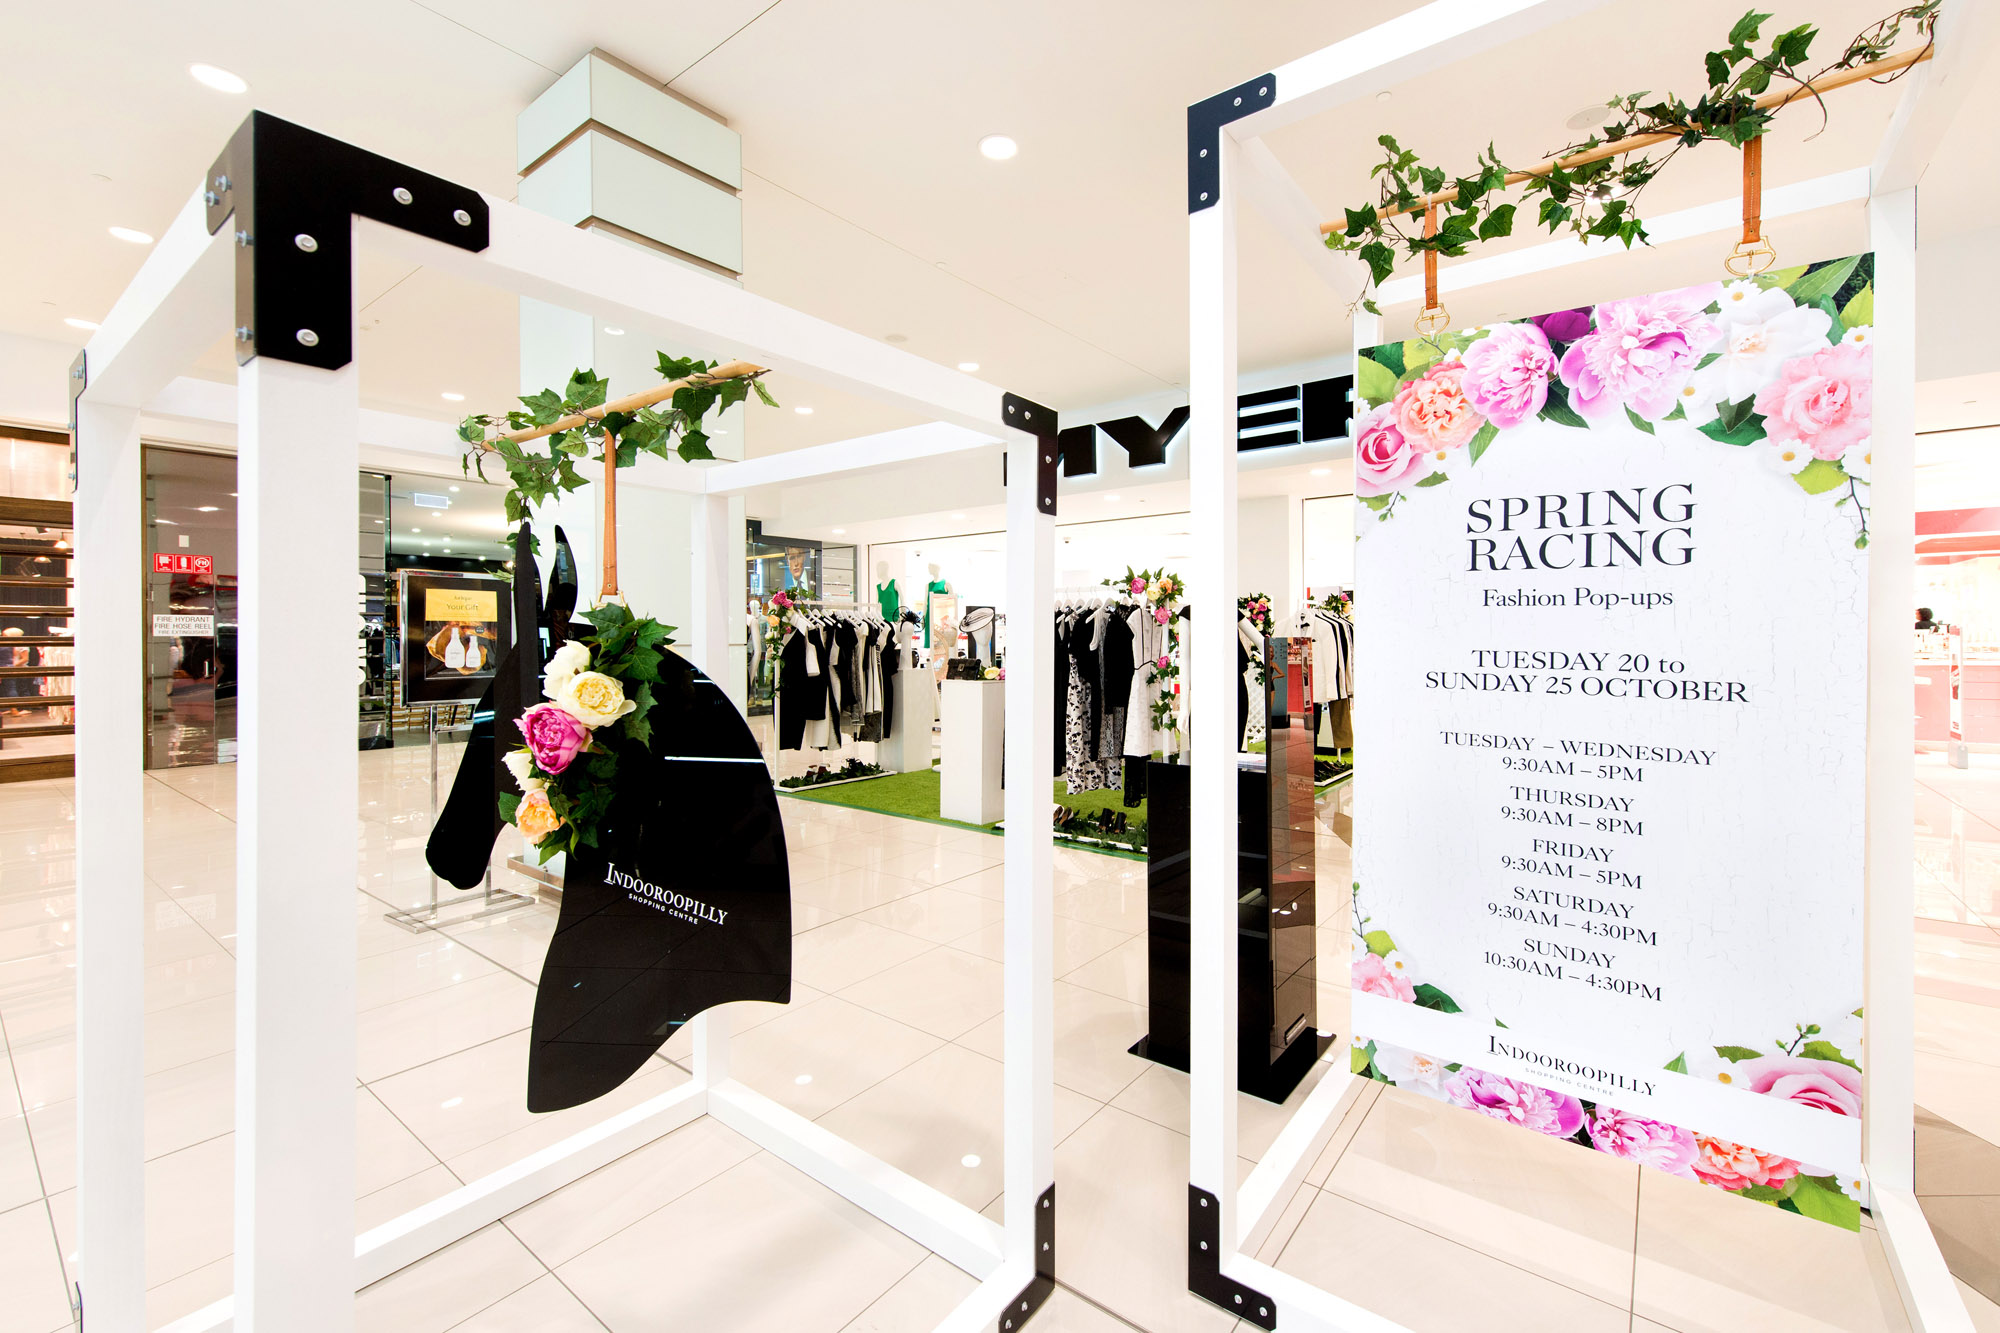 2015 TPH Spring Racing Fashion Pop Ups Indooroopilly 308